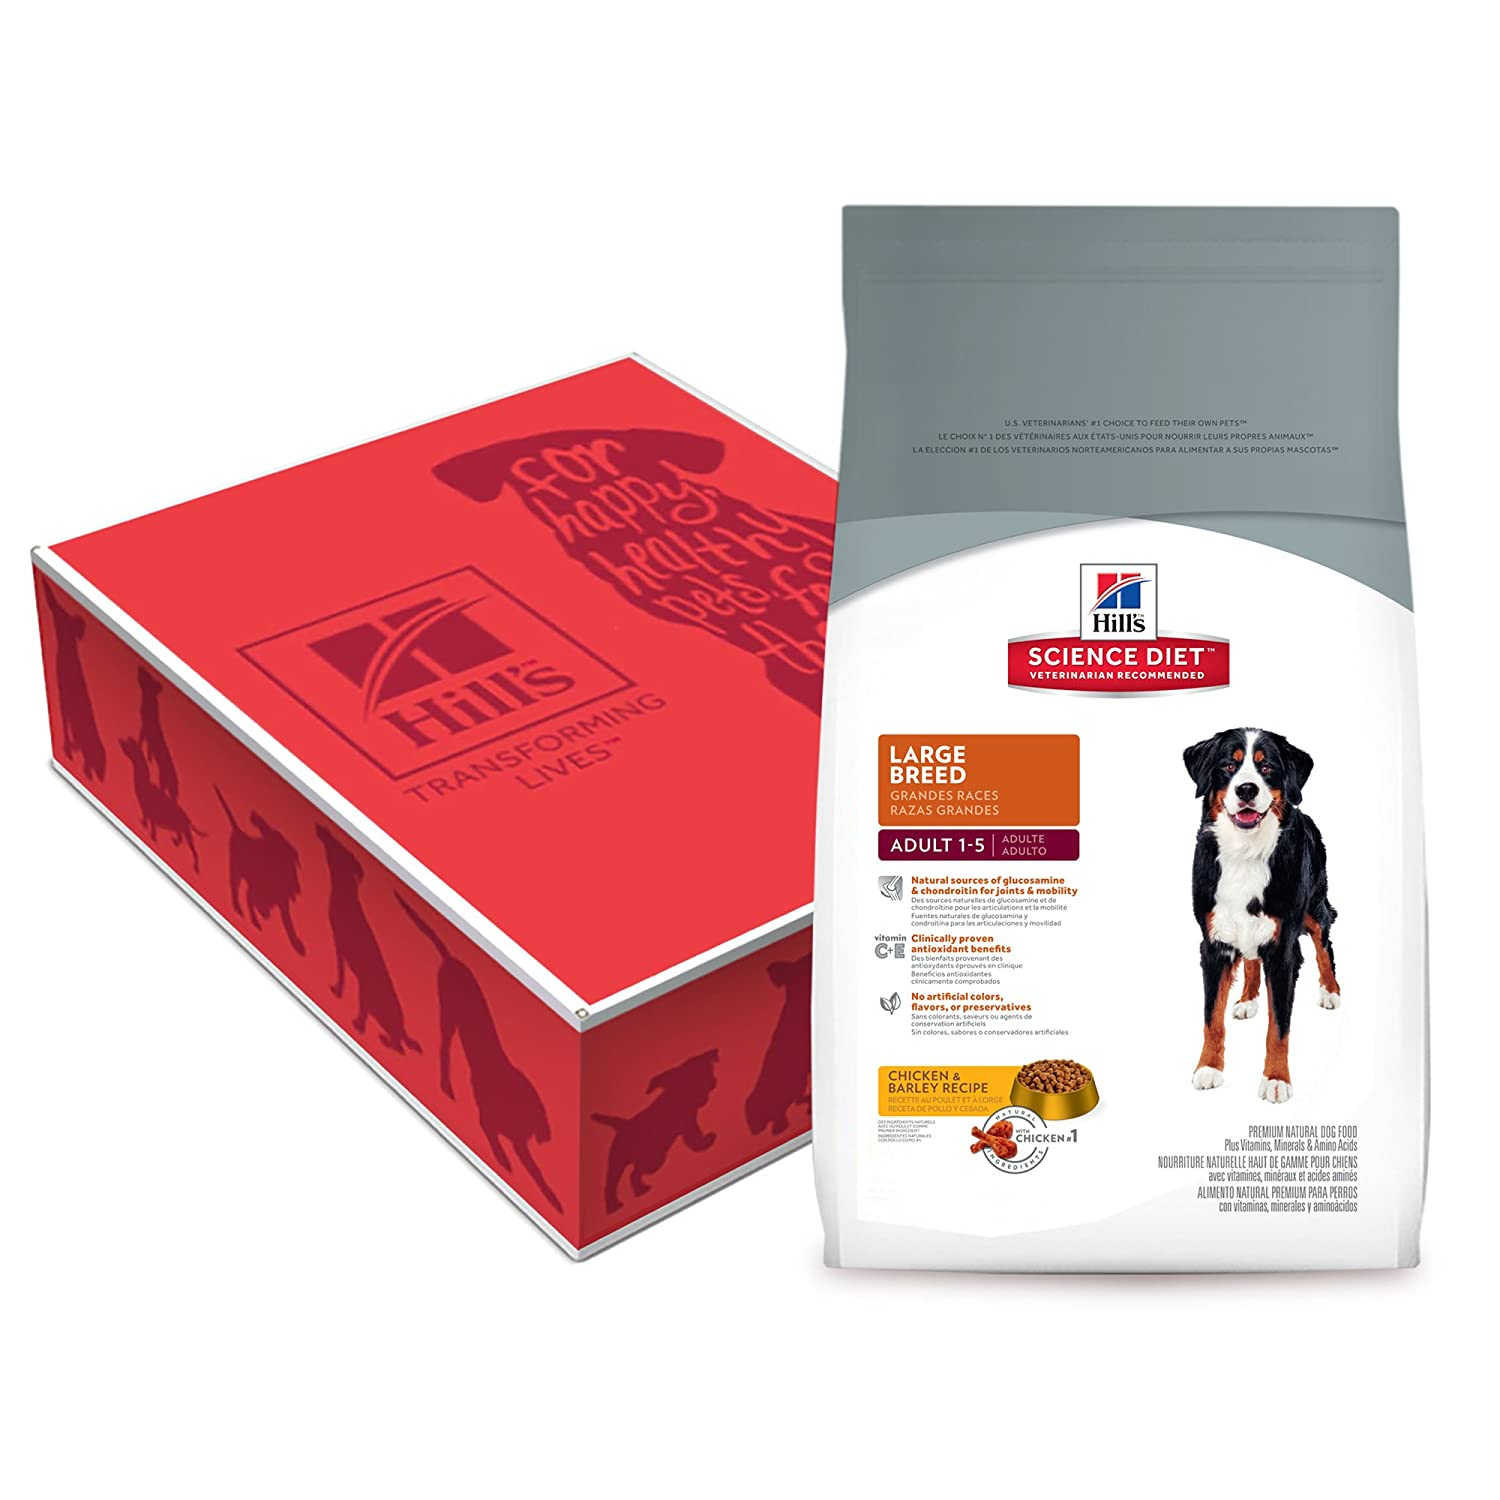 2. Hill's Science Diet Adult Large Breed Dry Dog Foo